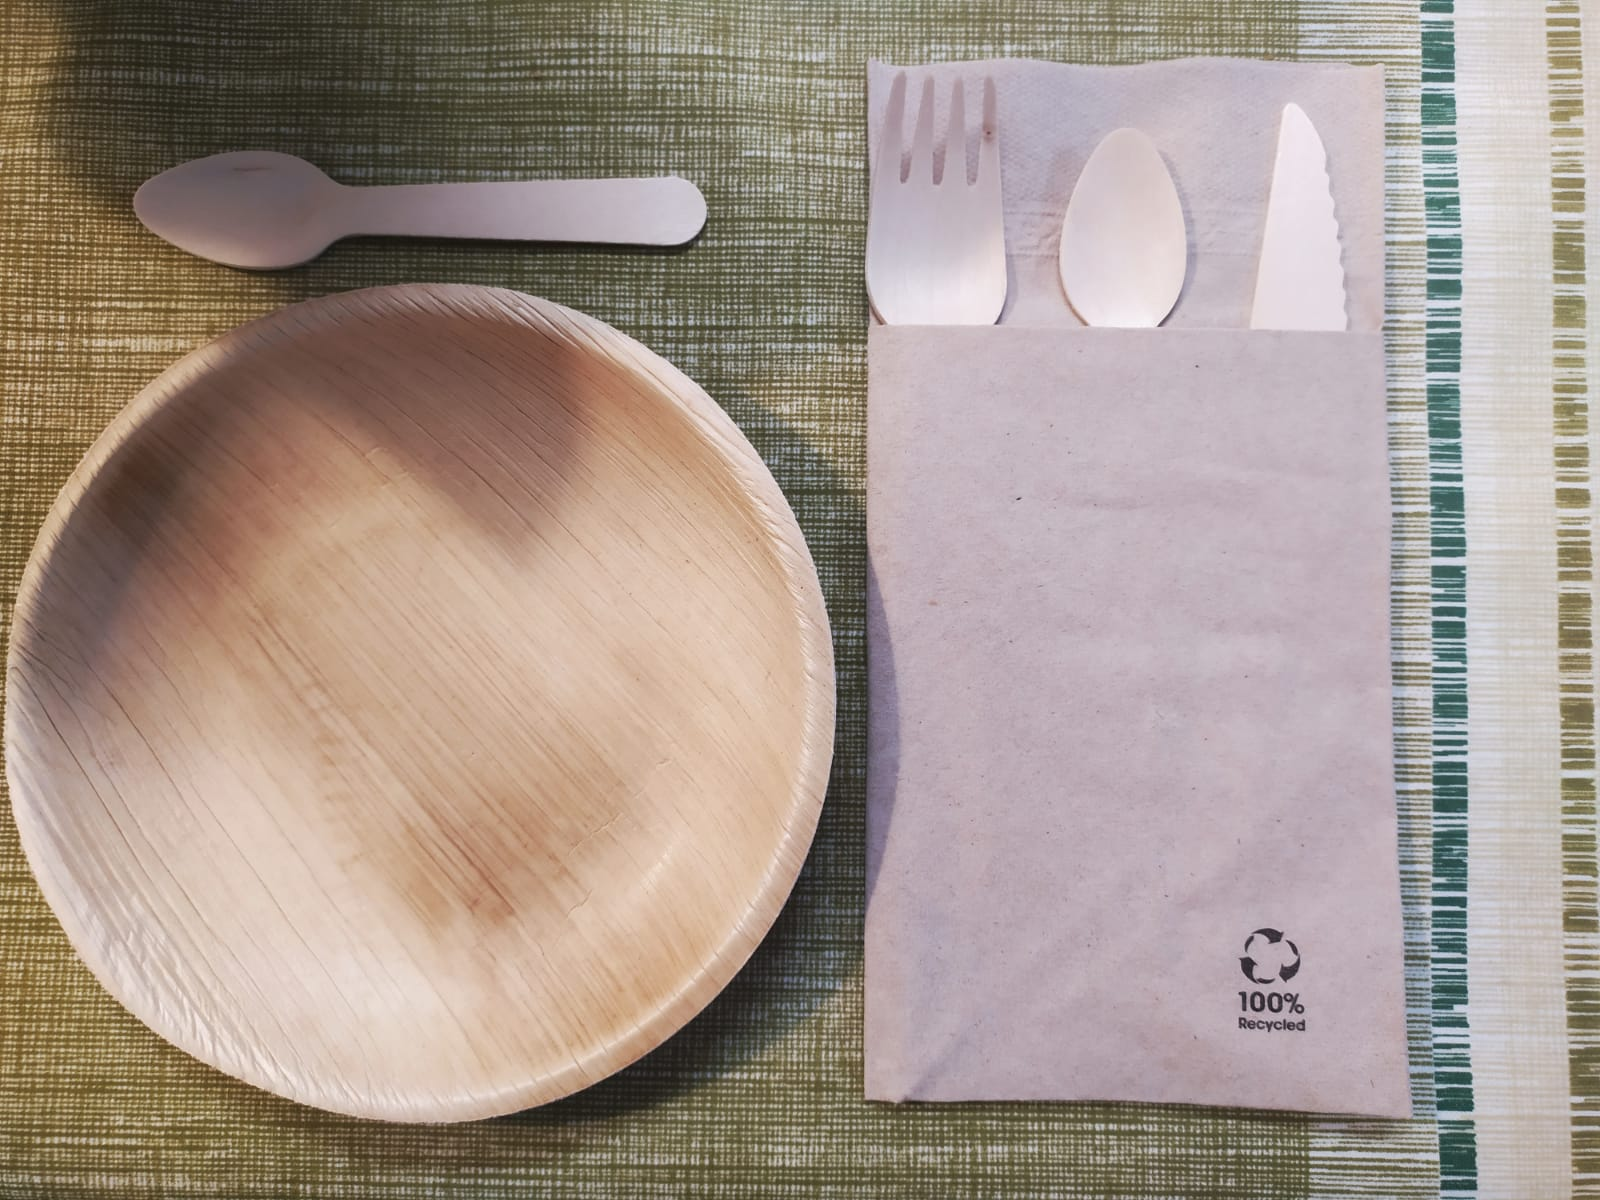 Wooden cutlery for breakfast